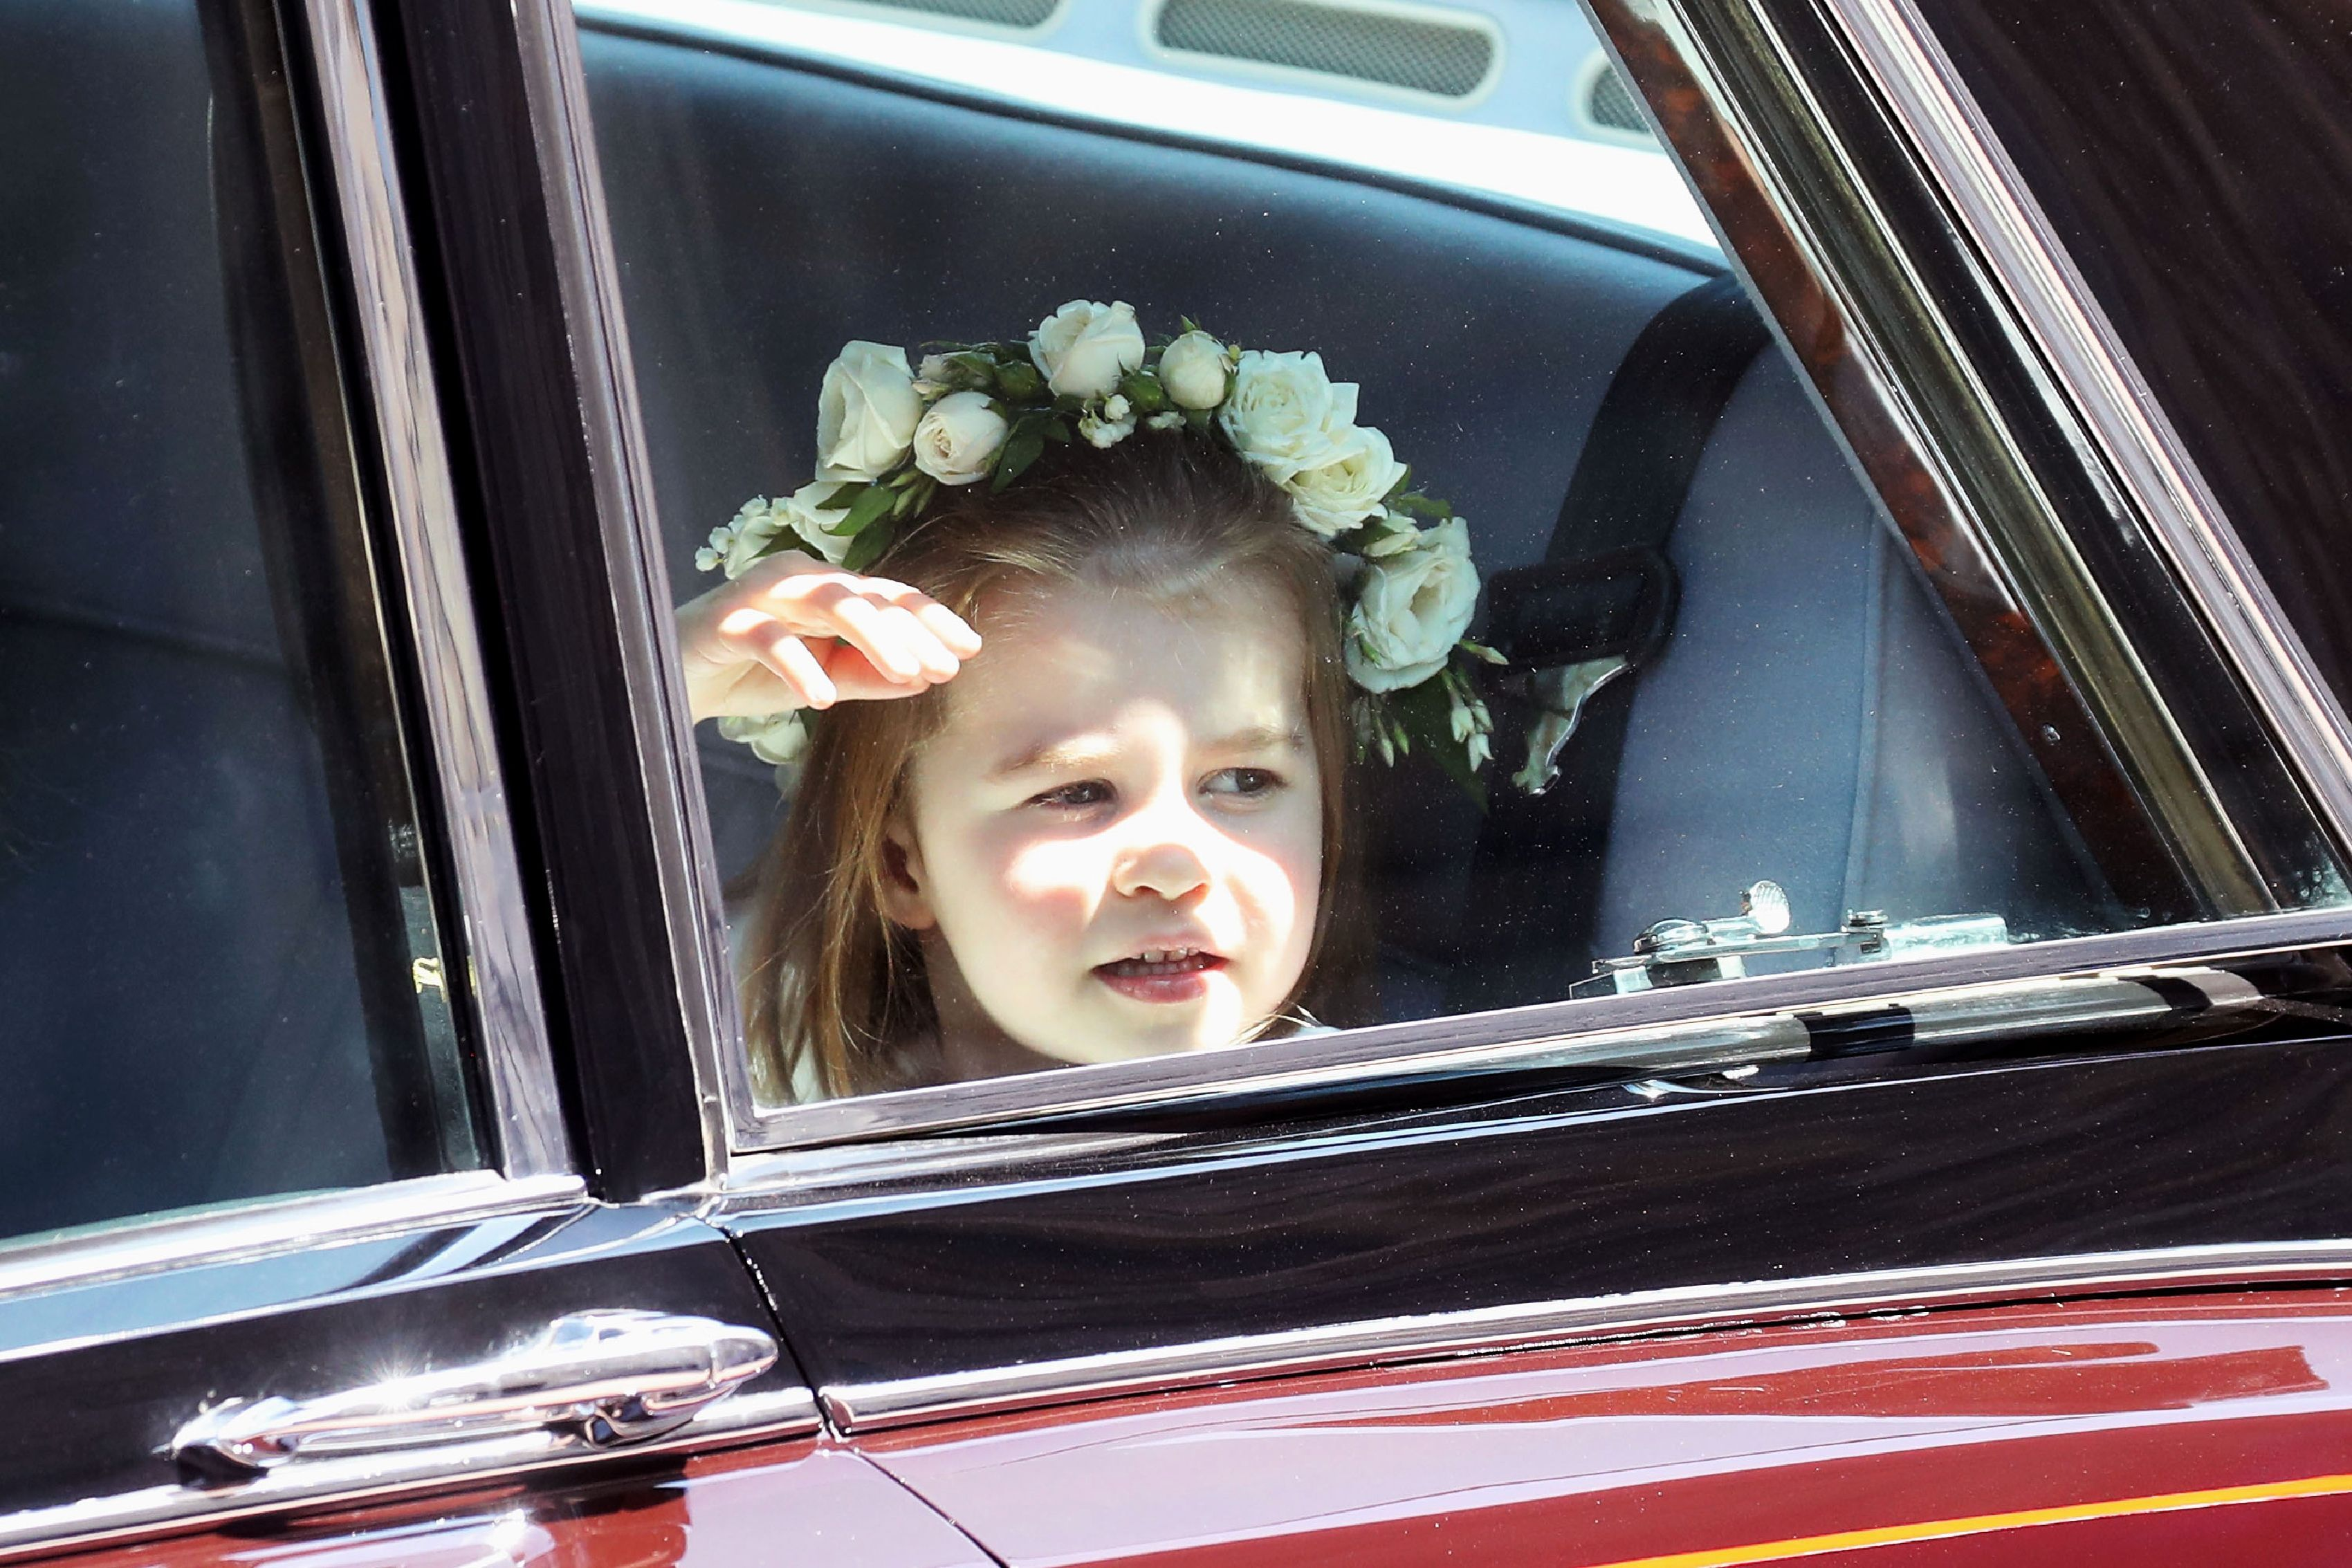 Cuteness overload: Prince George, Princess Charlotte melt hearts at the royal wedding